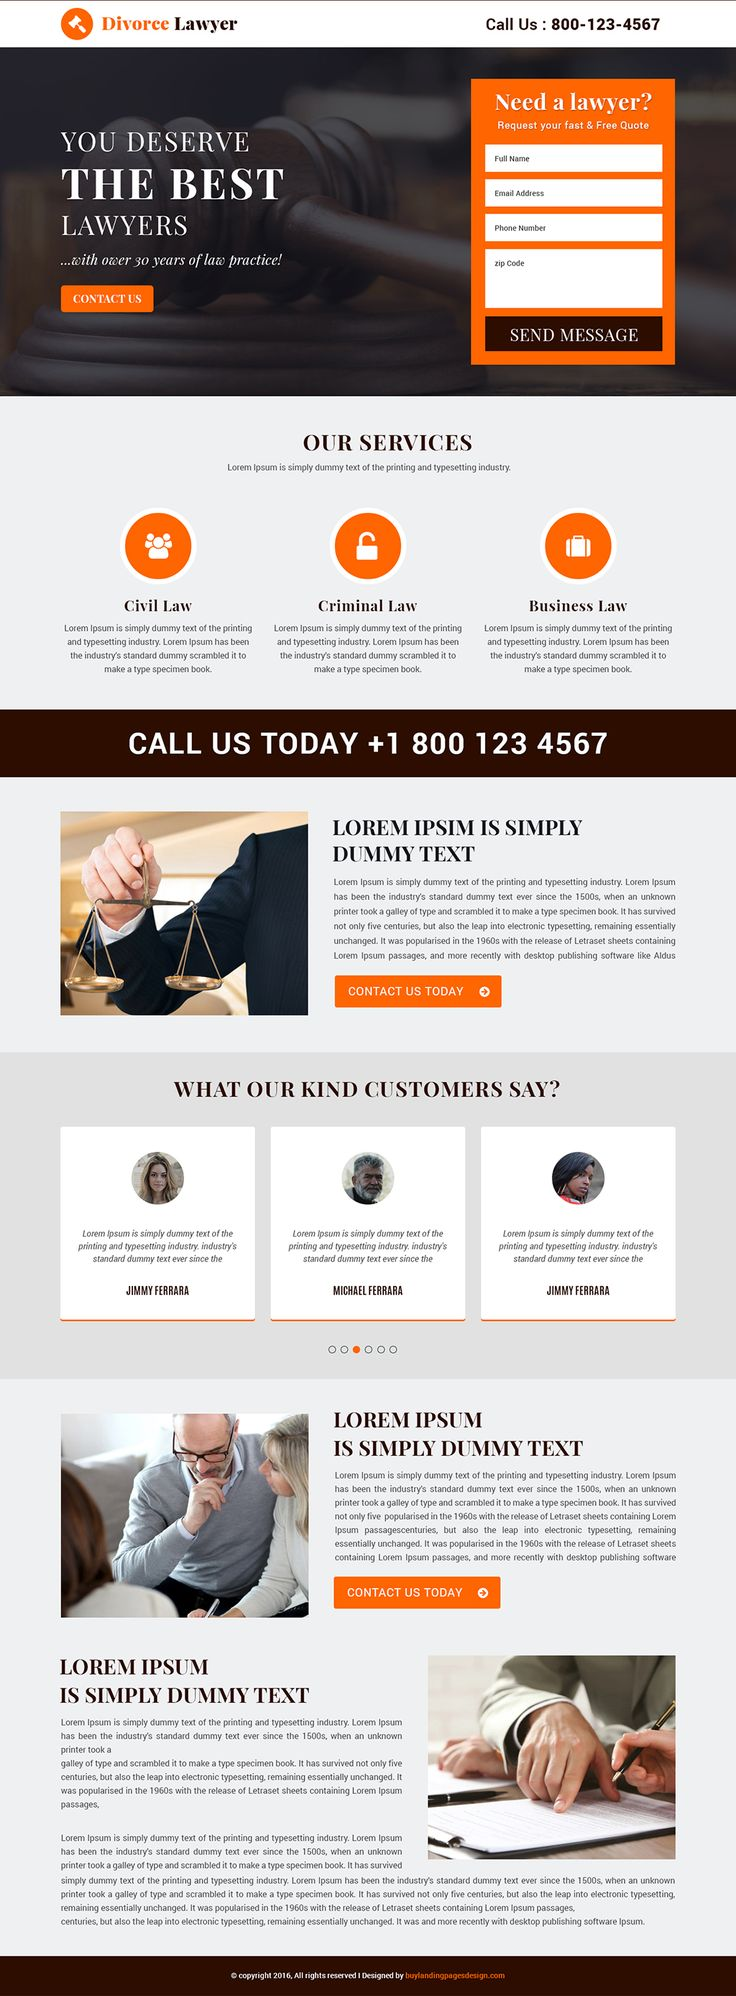 Responsive Divorce Lawyer Landing Page Template $29 only BuyNow!